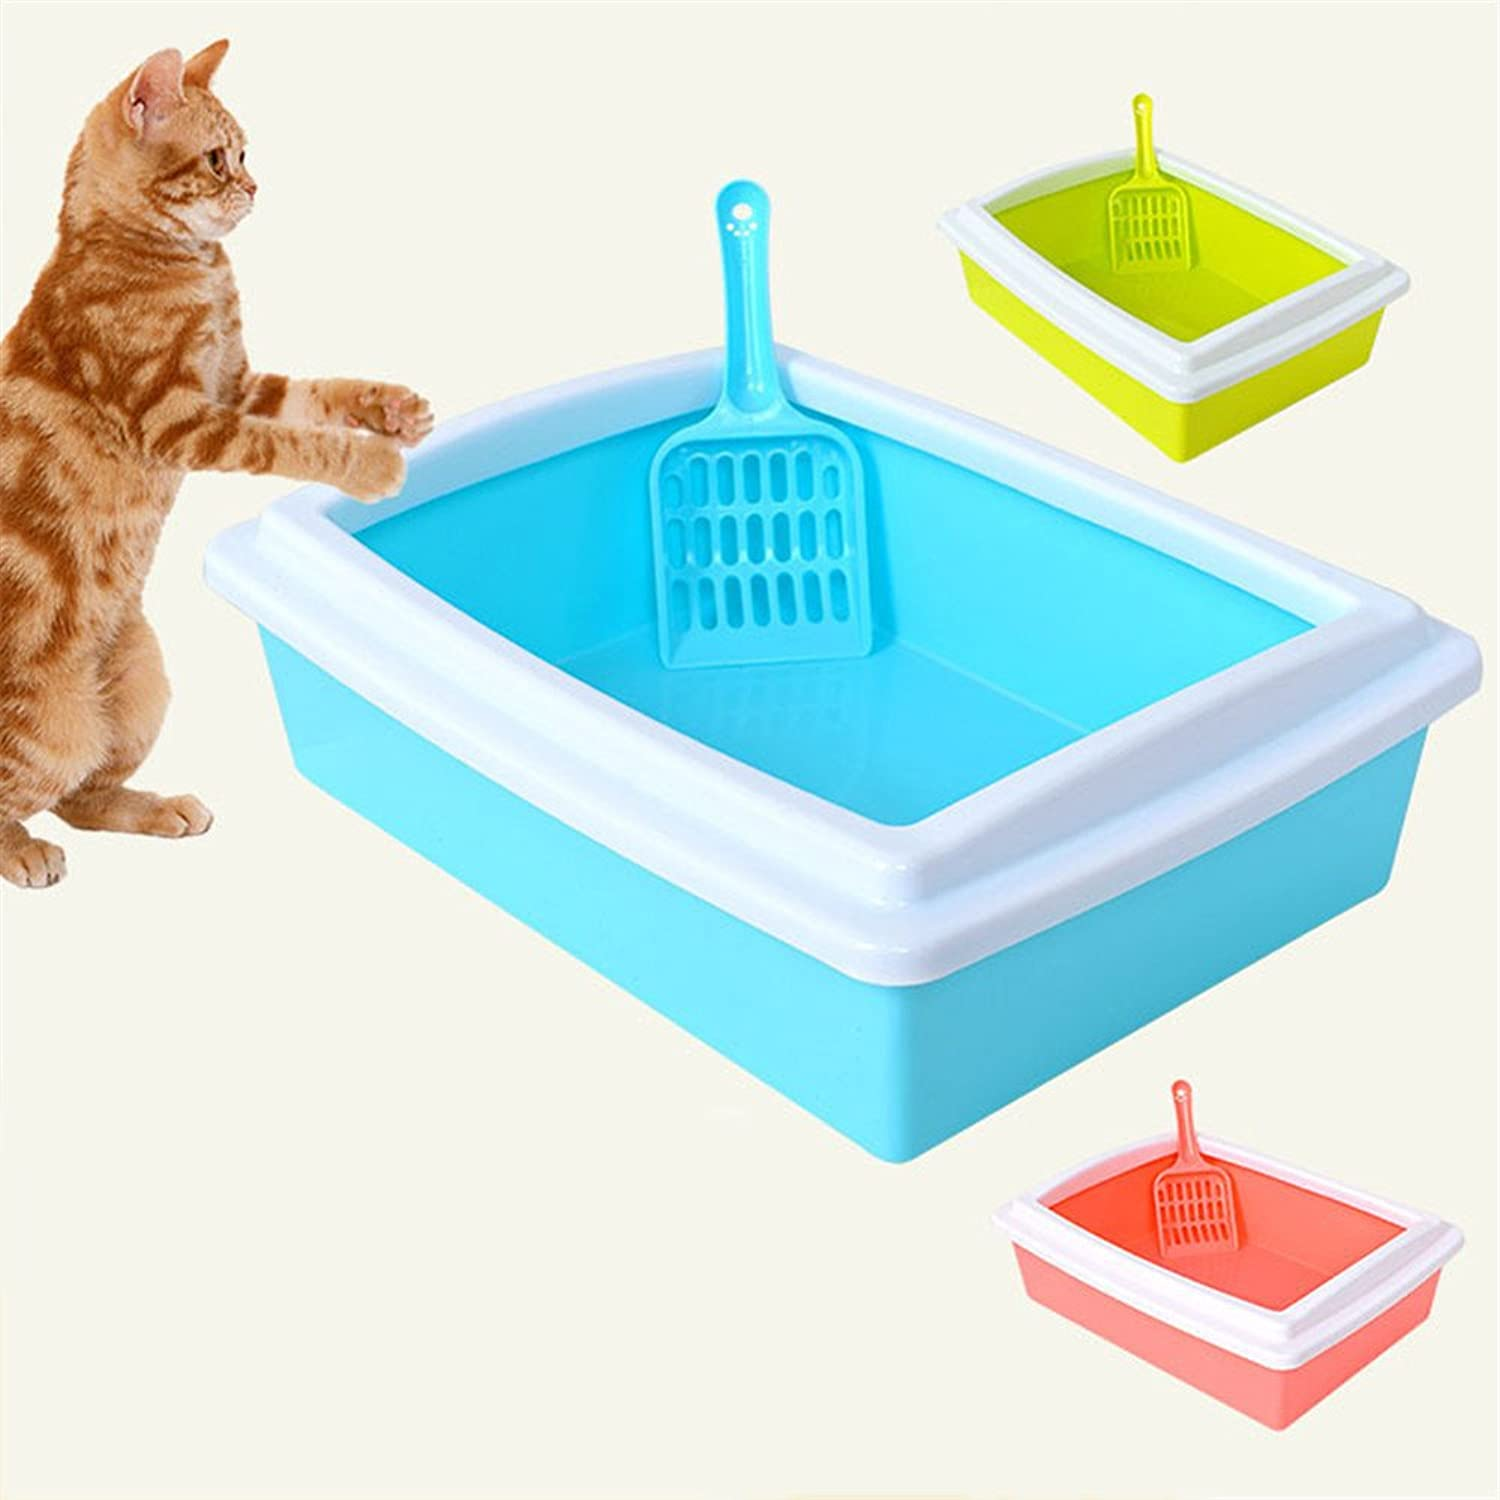 DESESHENME Demountable Cat Toilet Puppy Pet Potty Cat Toilet Give Litter Shovel Bedpan Cat Litter Box High Quality,bluee,39.5×30.5×13cm